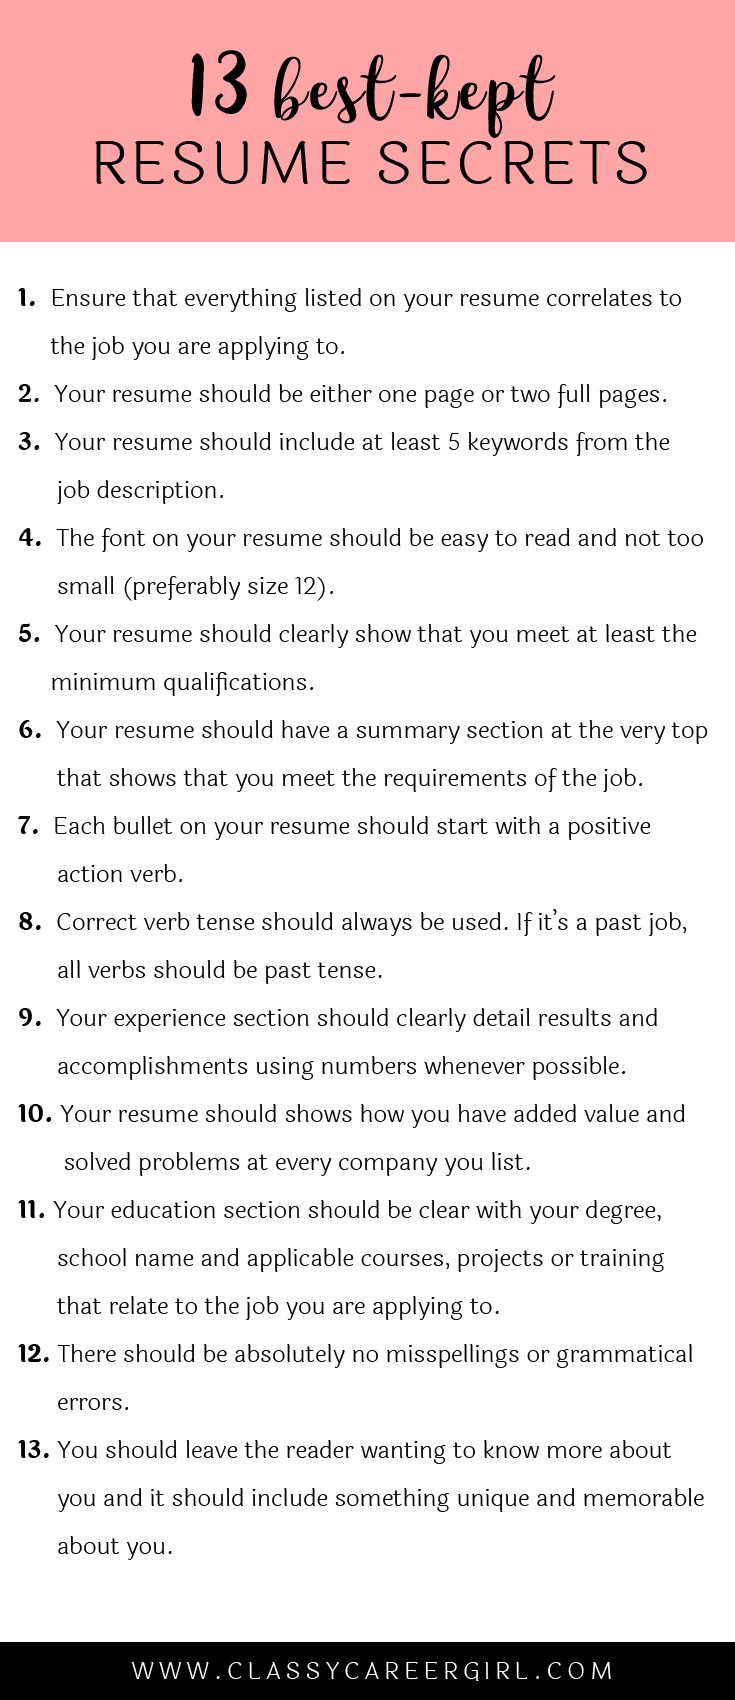 Opposenewapstandardsus  Pretty  Ideas About Resume On Pinterest  Cv Format Resume Cv And  With Luxury Some Hiring Managers Will Toss Your Resume Out If You Dont Know These  With Enchanting Nursing Skills For Resume Also Examples Of Teacher Resumes In Addition Free Resume Writer And Language Skills Resume As Well As Resume Strengths Additionally Academic Advisor Resume From Pinterestcom With Opposenewapstandardsus  Luxury  Ideas About Resume On Pinterest  Cv Format Resume Cv And  With Enchanting Some Hiring Managers Will Toss Your Resume Out If You Dont Know These  And Pretty Nursing Skills For Resume Also Examples Of Teacher Resumes In Addition Free Resume Writer From Pinterestcom